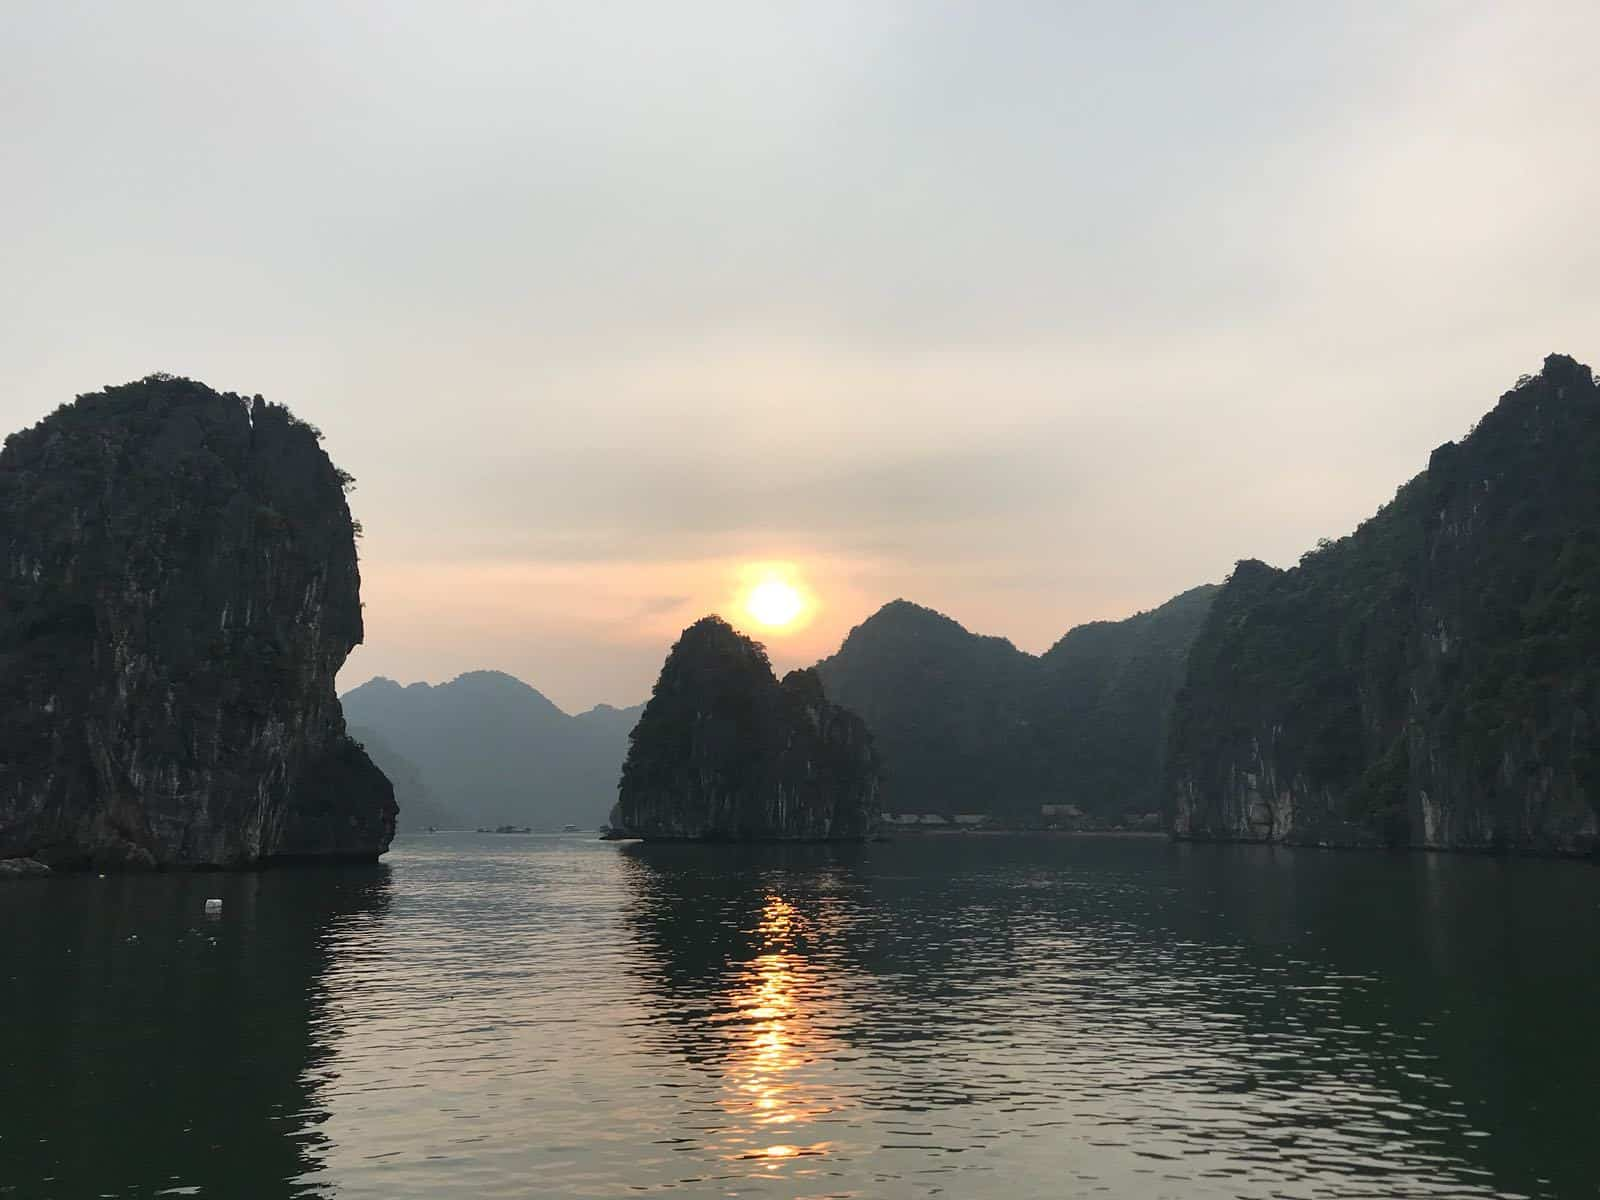 Towering cliffs adorn the water in Halong Bay, Vietnam